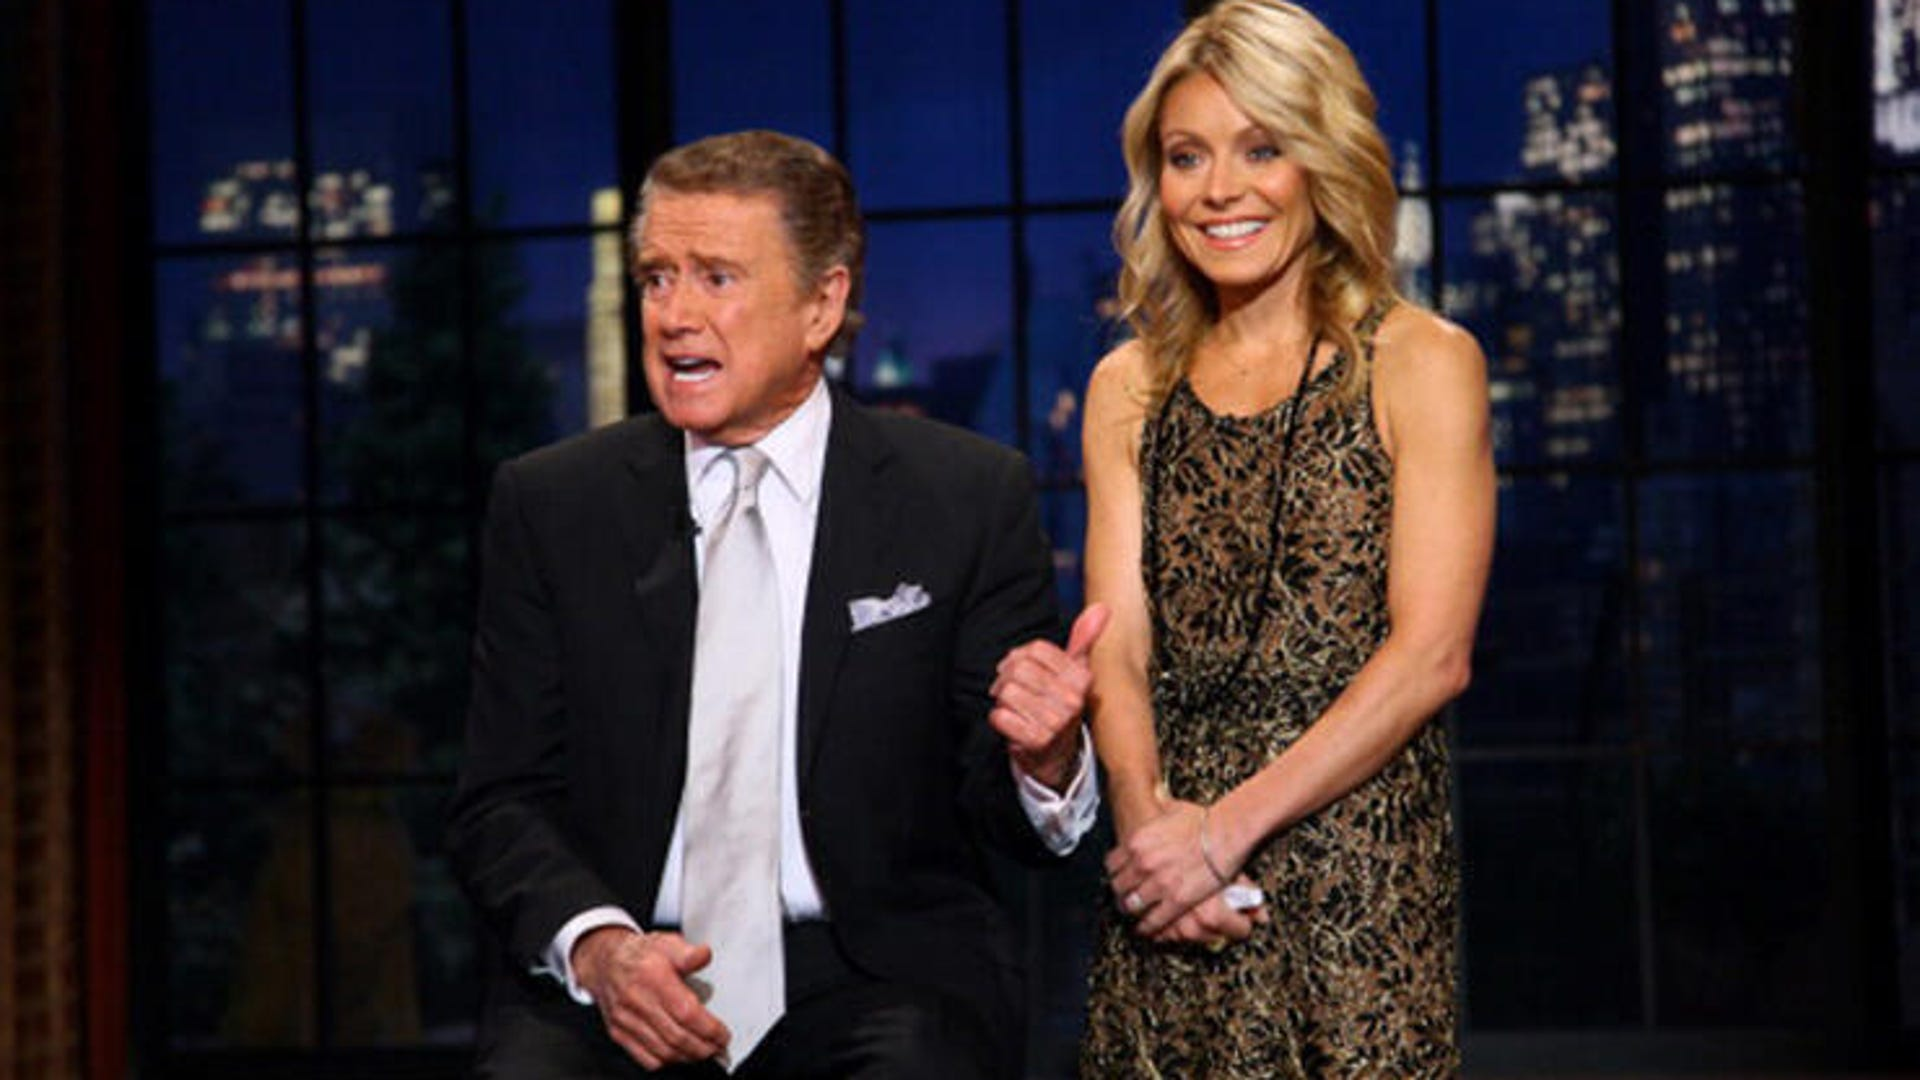 Regis Philbin and Kelly Ripa, Live with Regis and Kelly